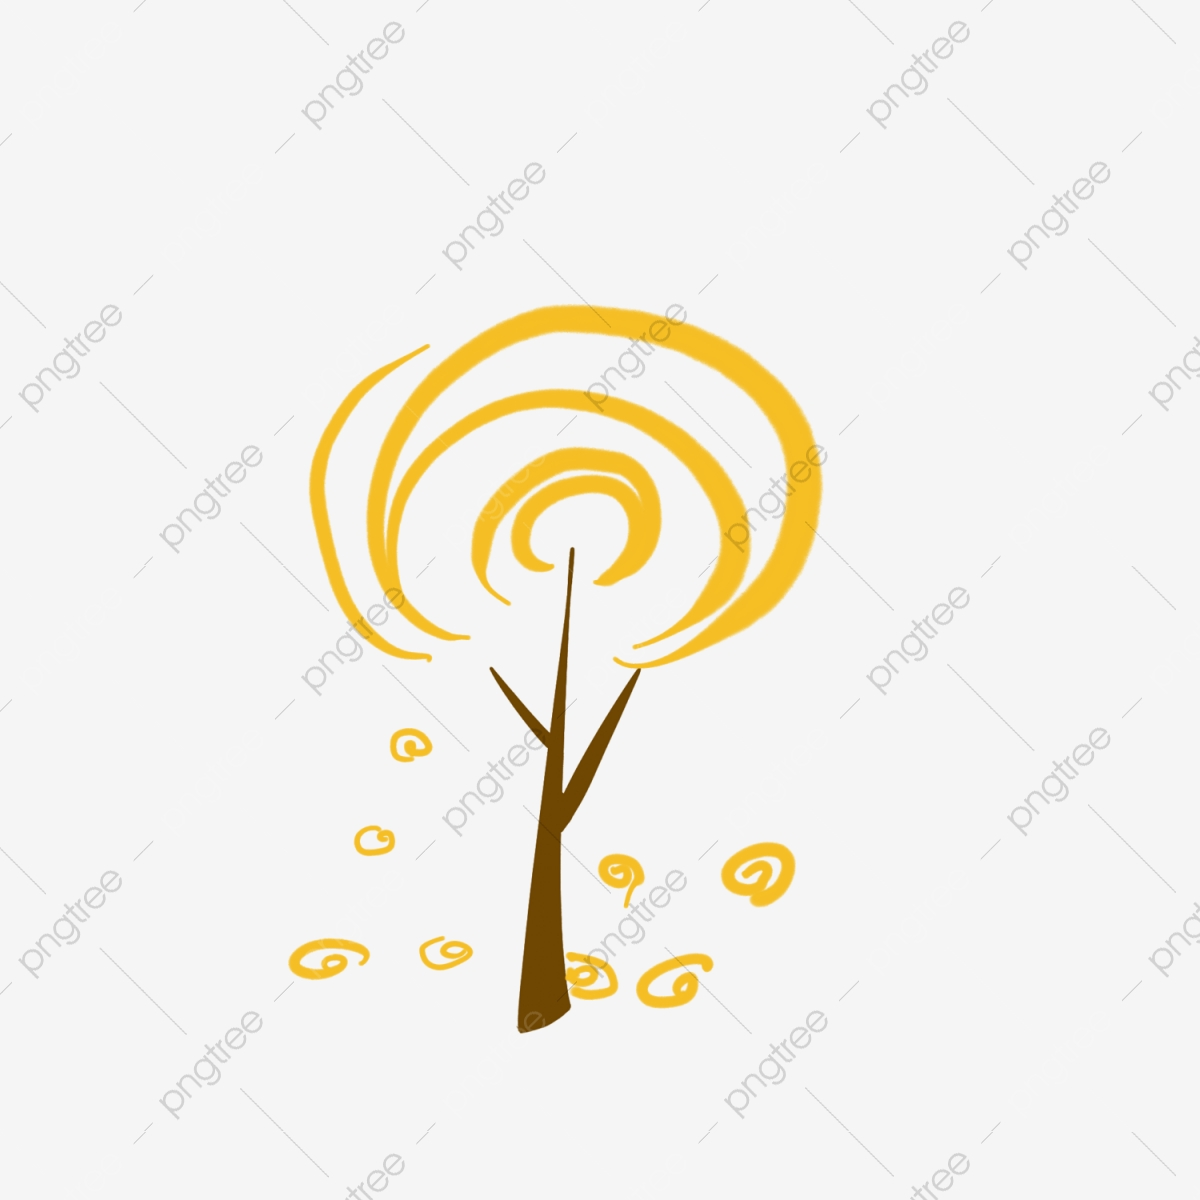 Abstract Tree Spiral Tree Cartoon Tree Simple Yellow Tree Fall Leaves Falling Abstract Tree Png Transparent Clipart Image And Psd File For Free Download Evergreen silhouette tree cartoon free trees christmas plant fir silouette pine silhouettes. https pngtree com freepng abstract tree spiral tree cartoon tree simple yellow tree 3852457 html